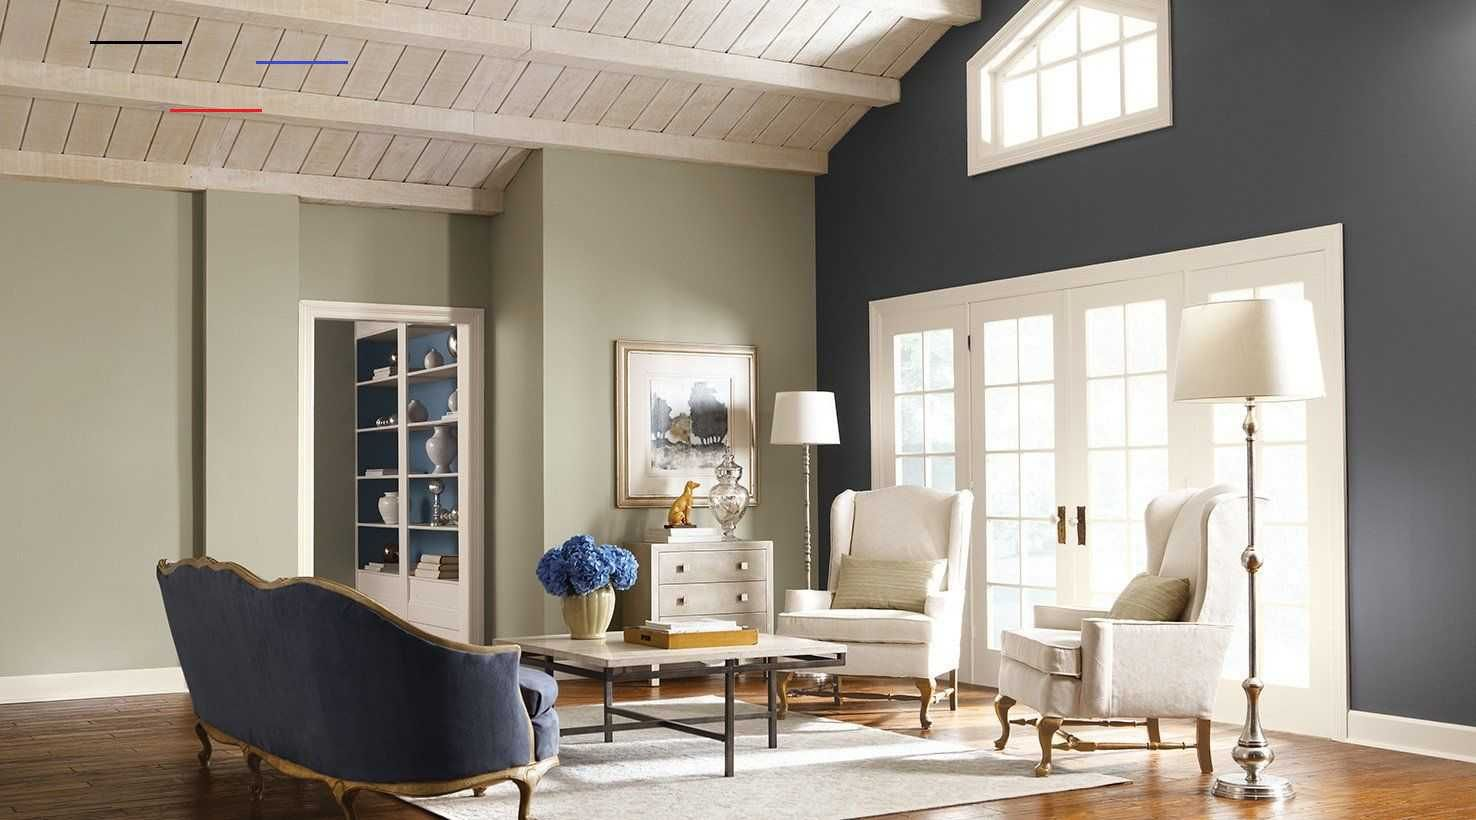 Livingroompaintcolorideas I 2020 #painting #one #wall #a #different #color #living #room